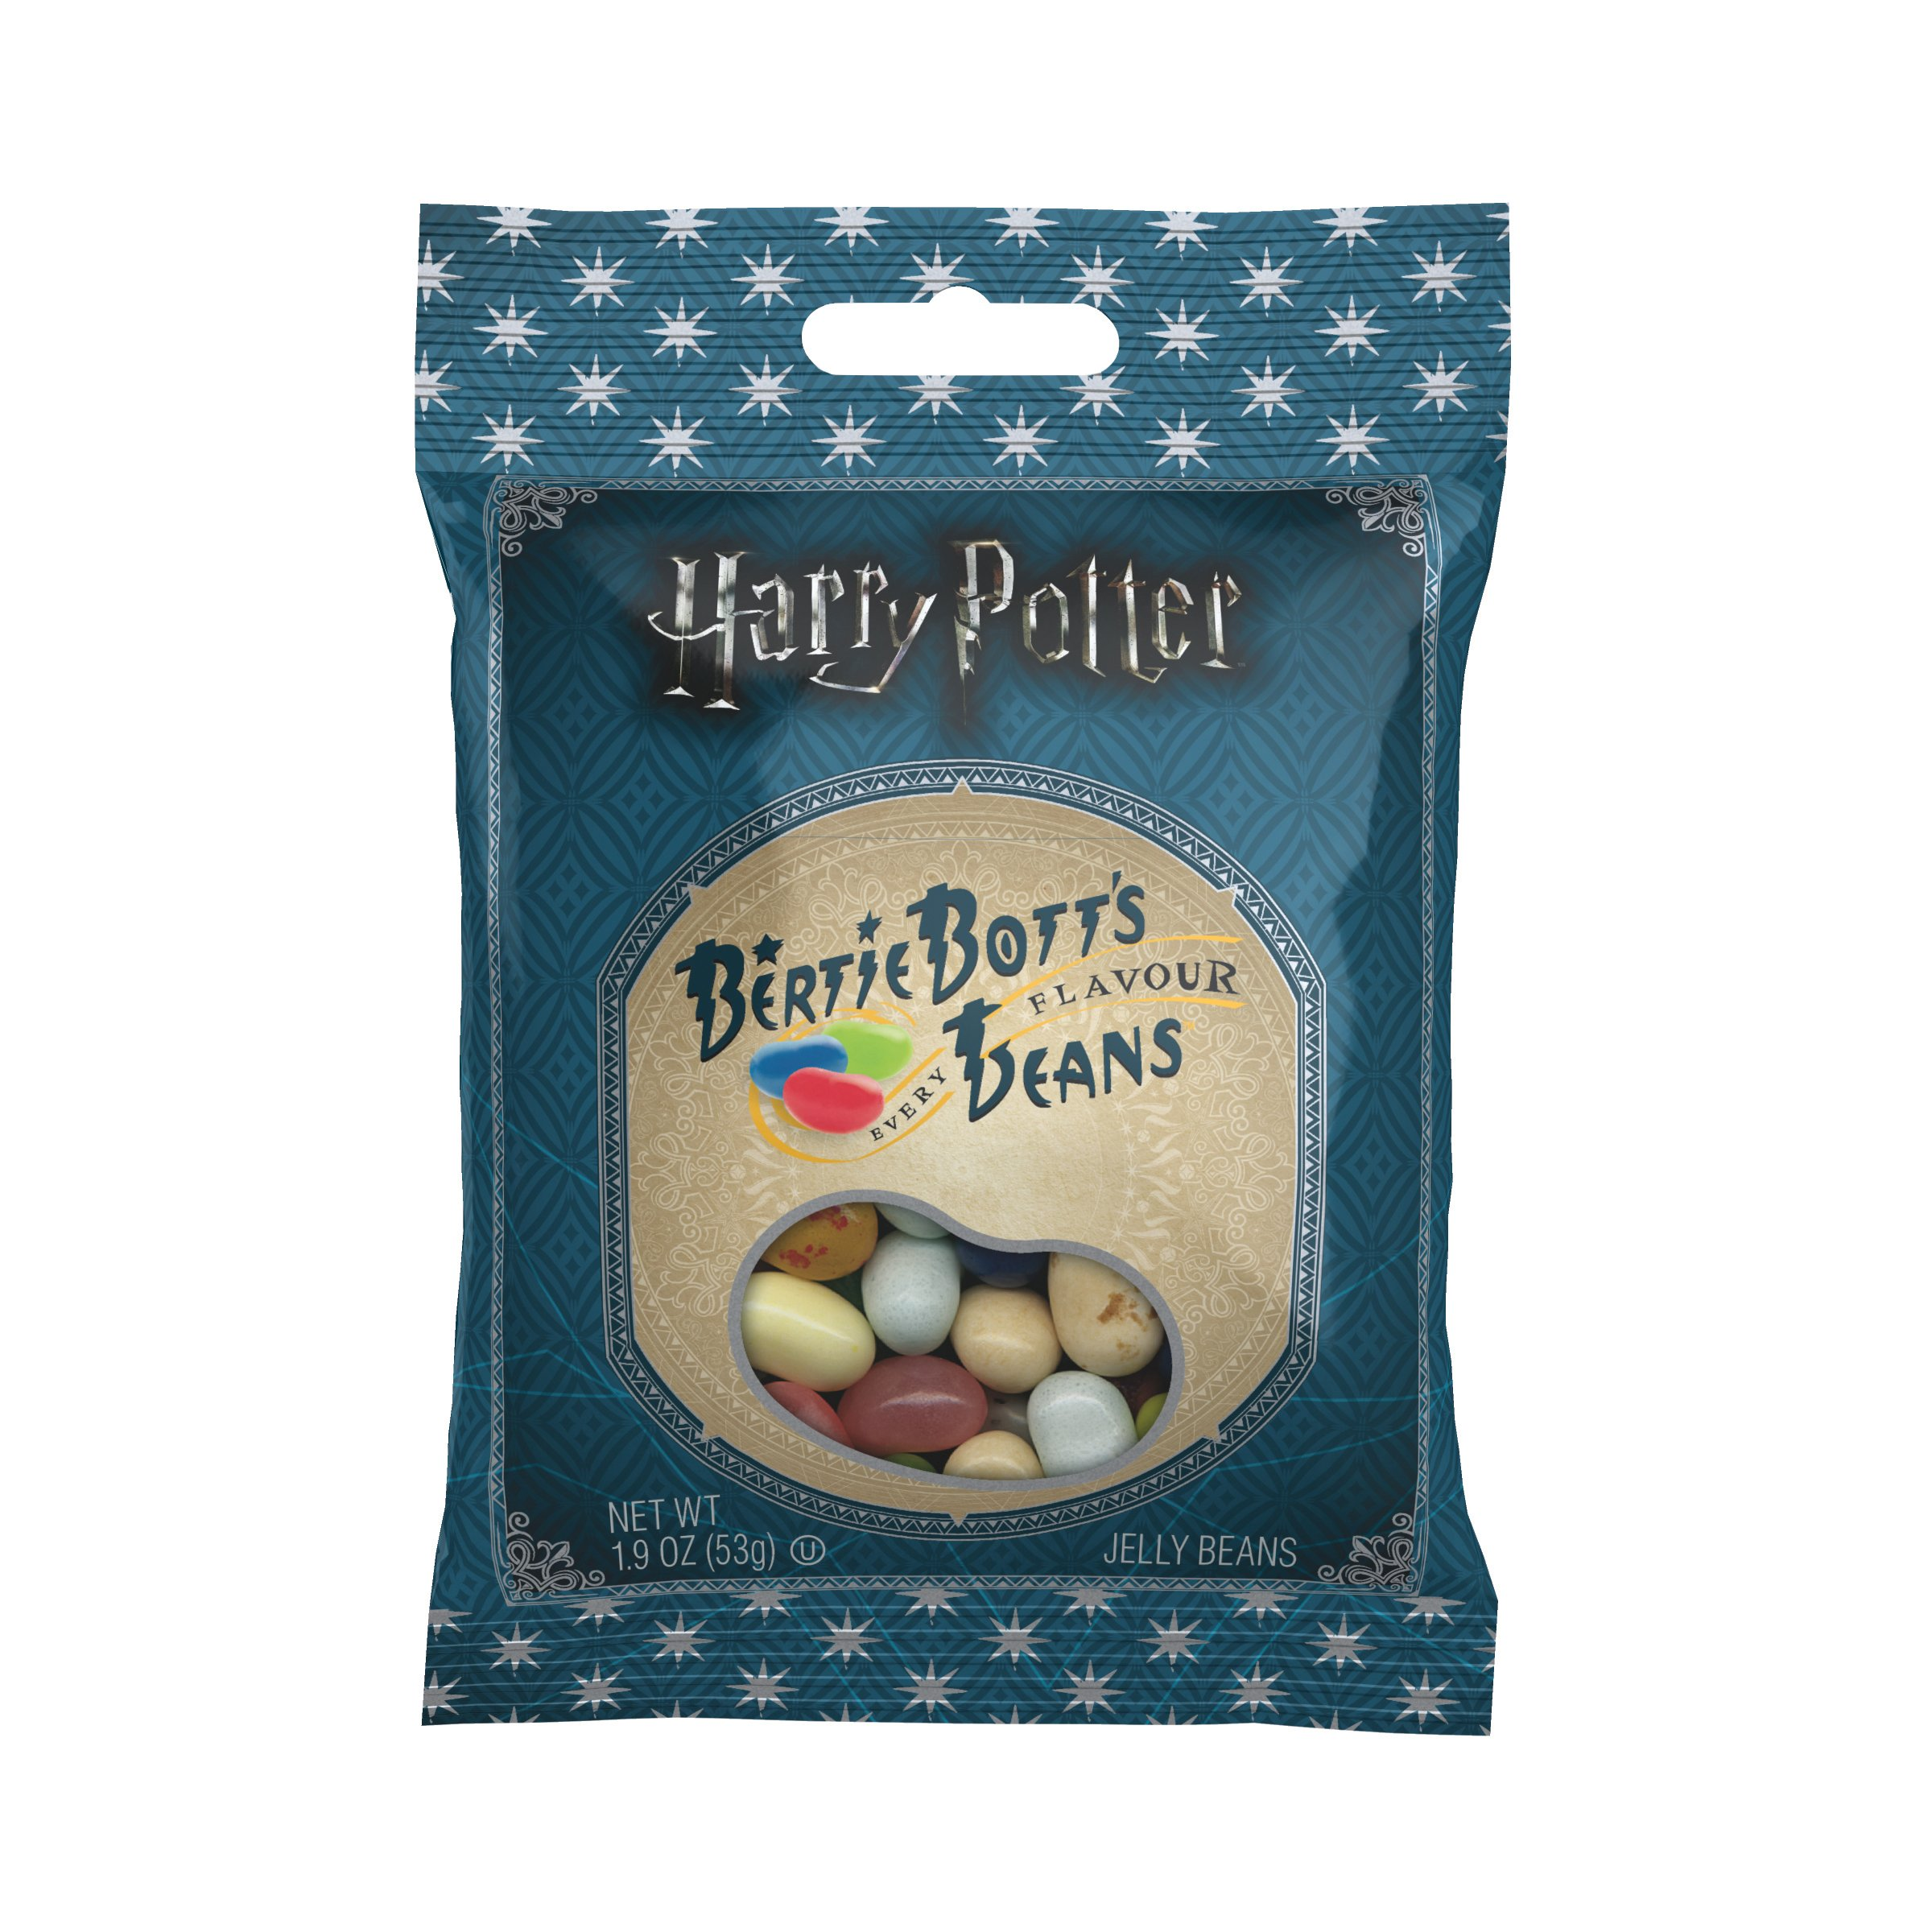 Jelly Belly Harry Potter Bertie Bott's Every Flavor Jelly Beans, 1.9-oz, 16 Pack by Jelly Belly